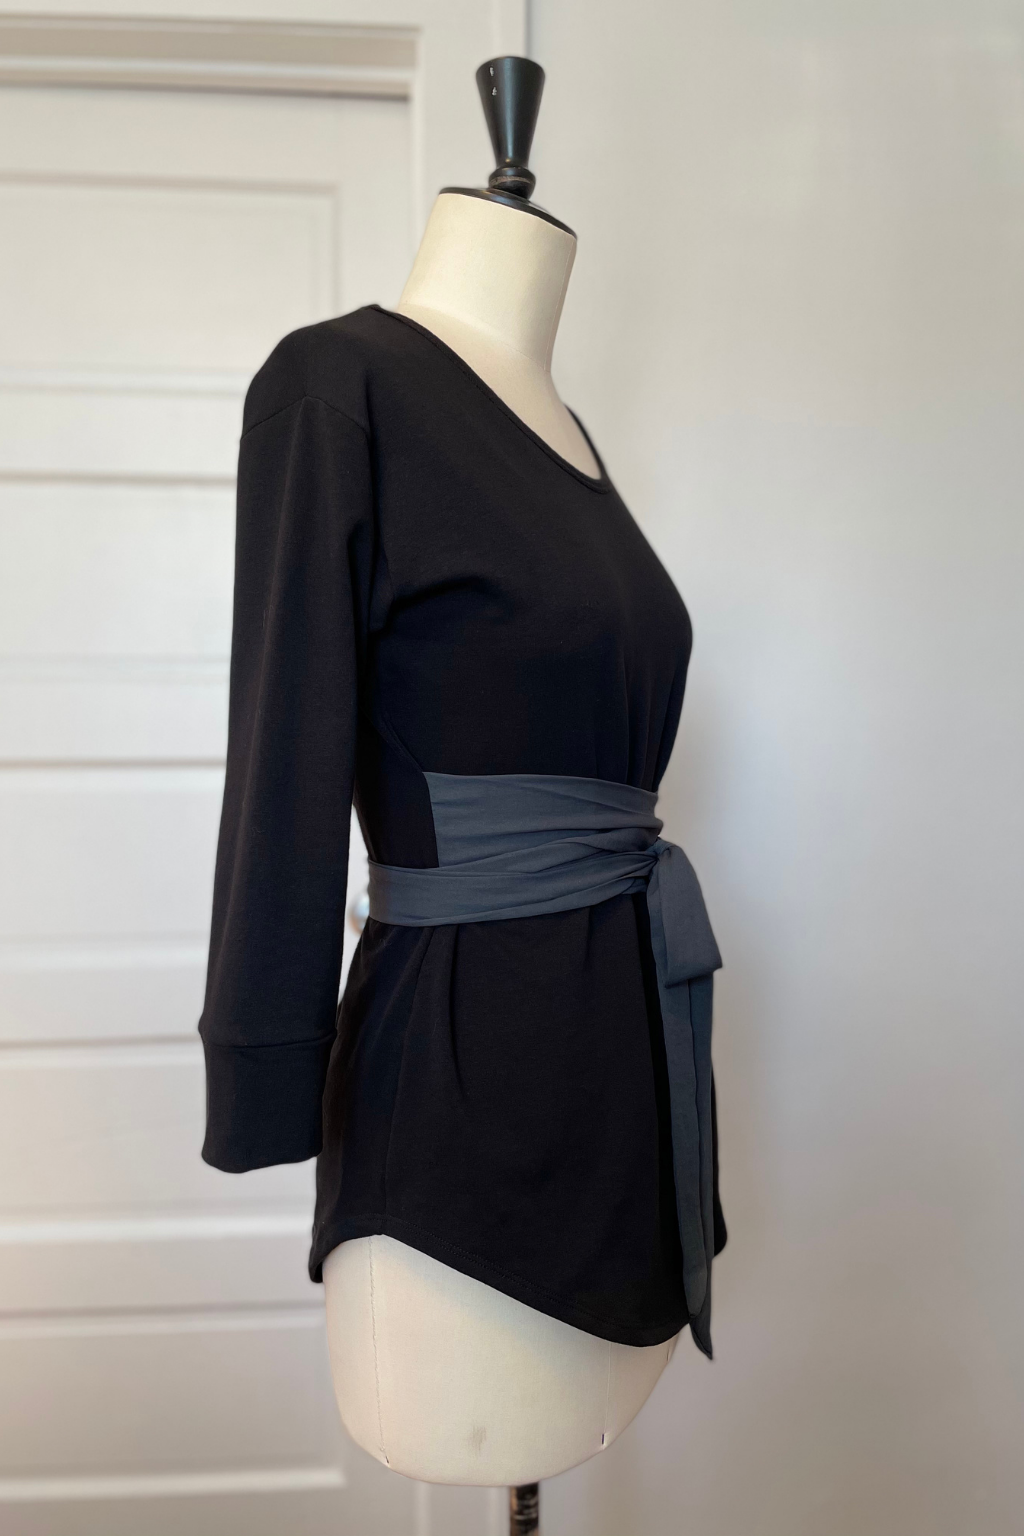 KOKOON Sweet Sweat French Terry and Chiffon Wrap Top in Black and Charcoal Side